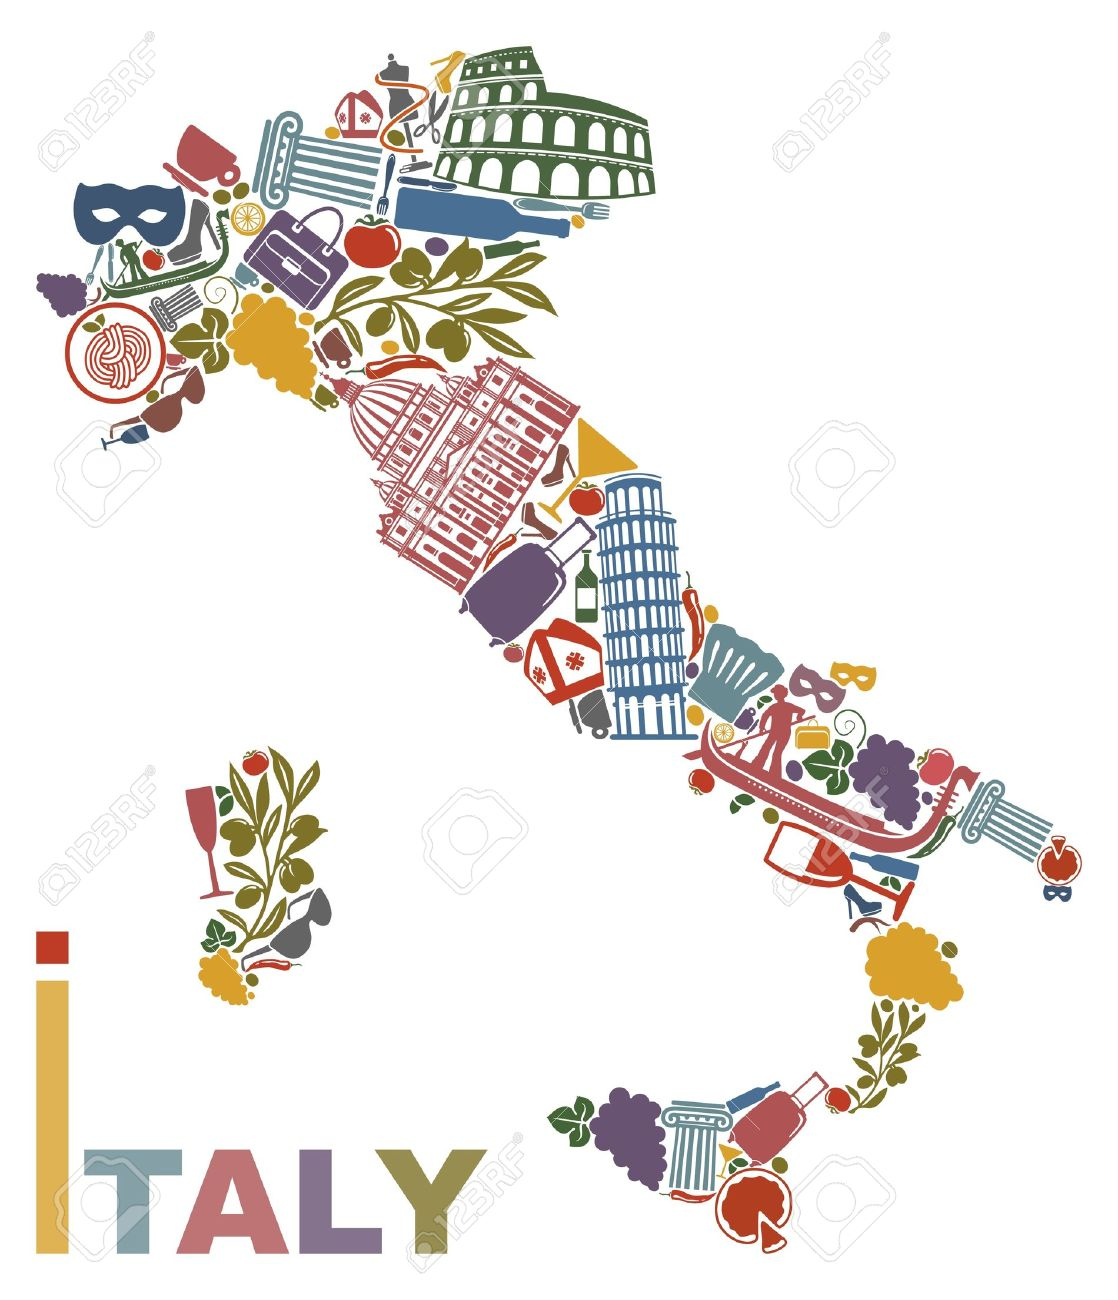 Traditional Symbols Of Italy In The Form Of A Map Royalty Free